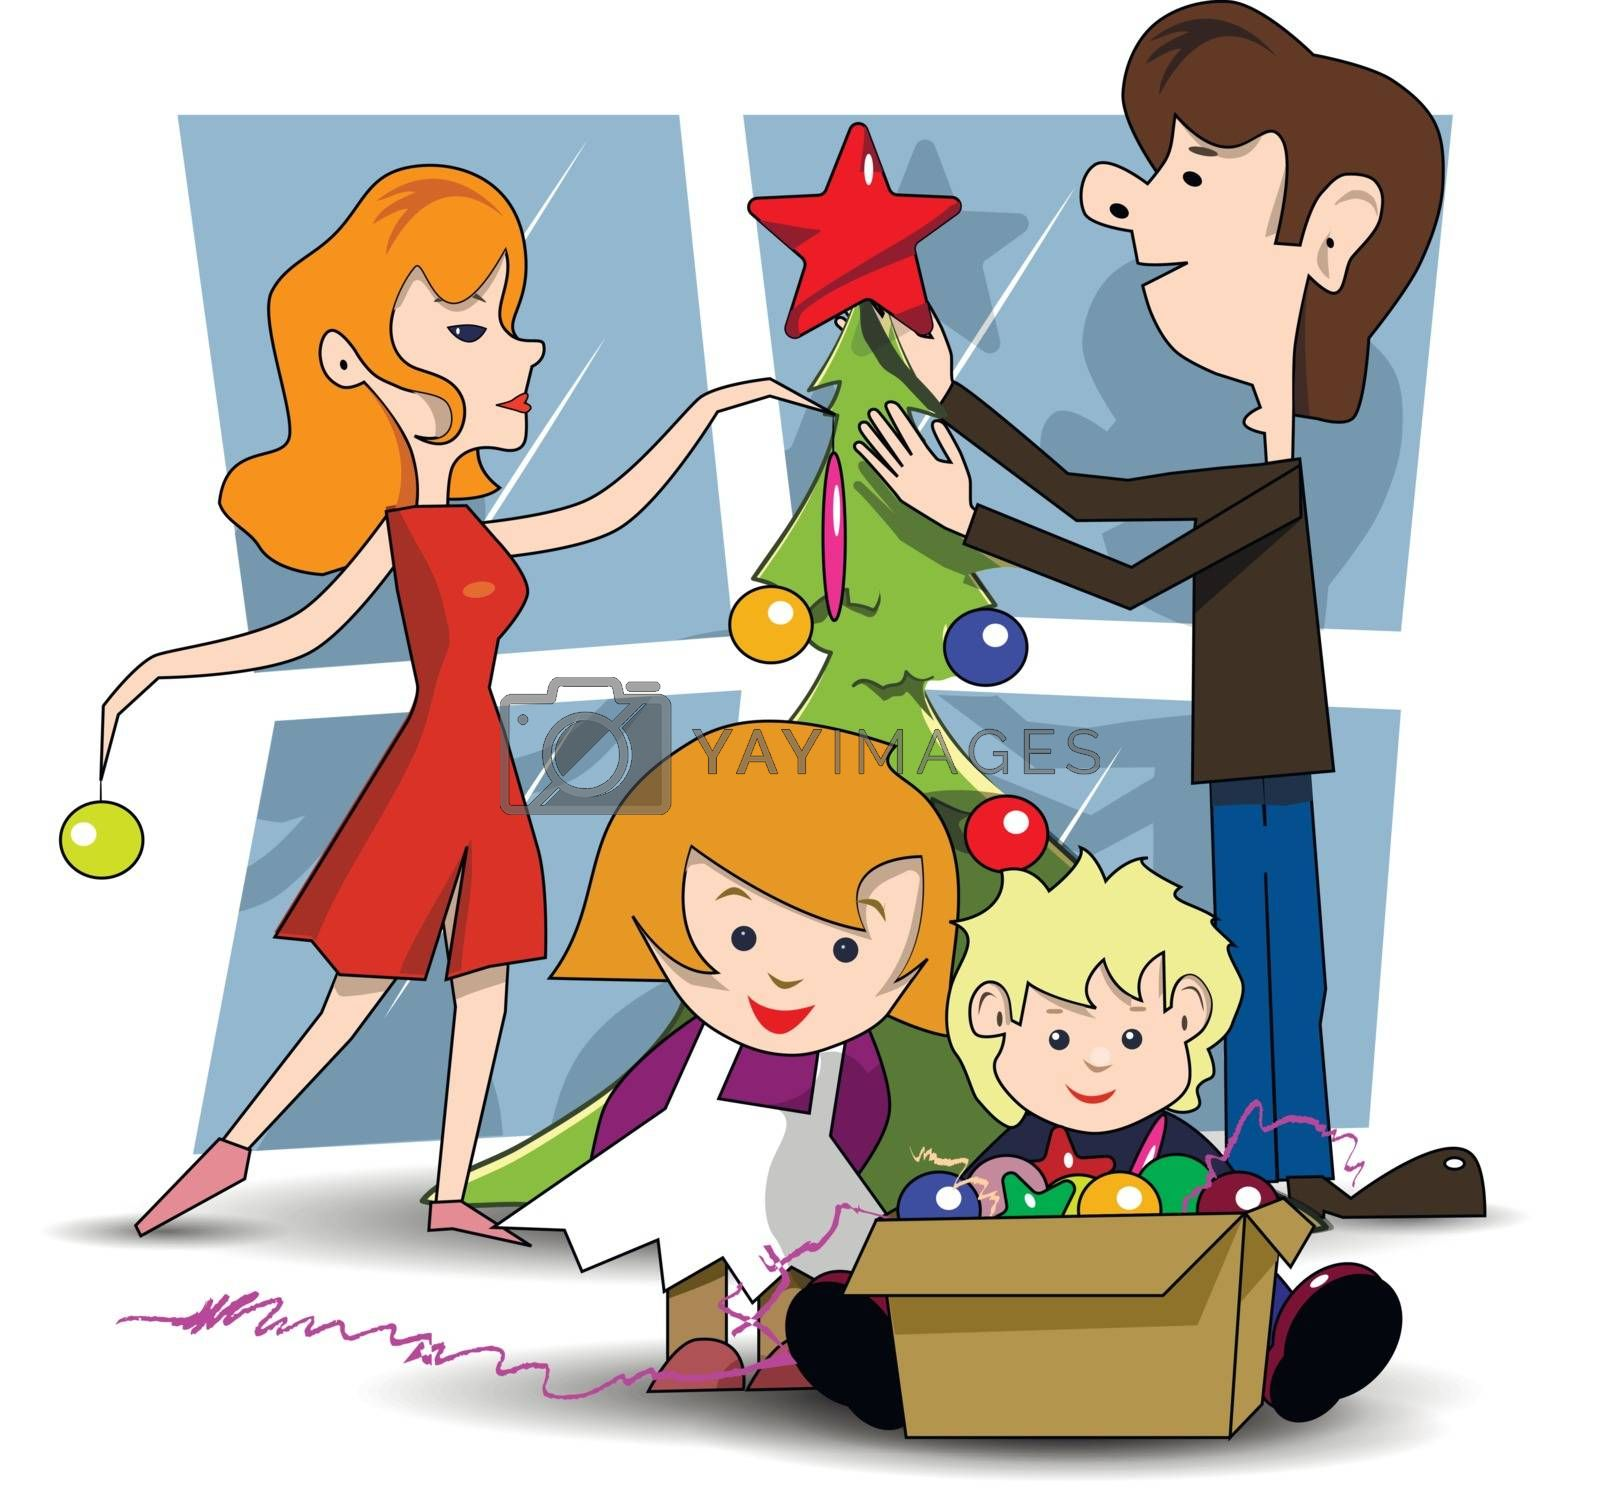 Decorating Christmas tree by brux